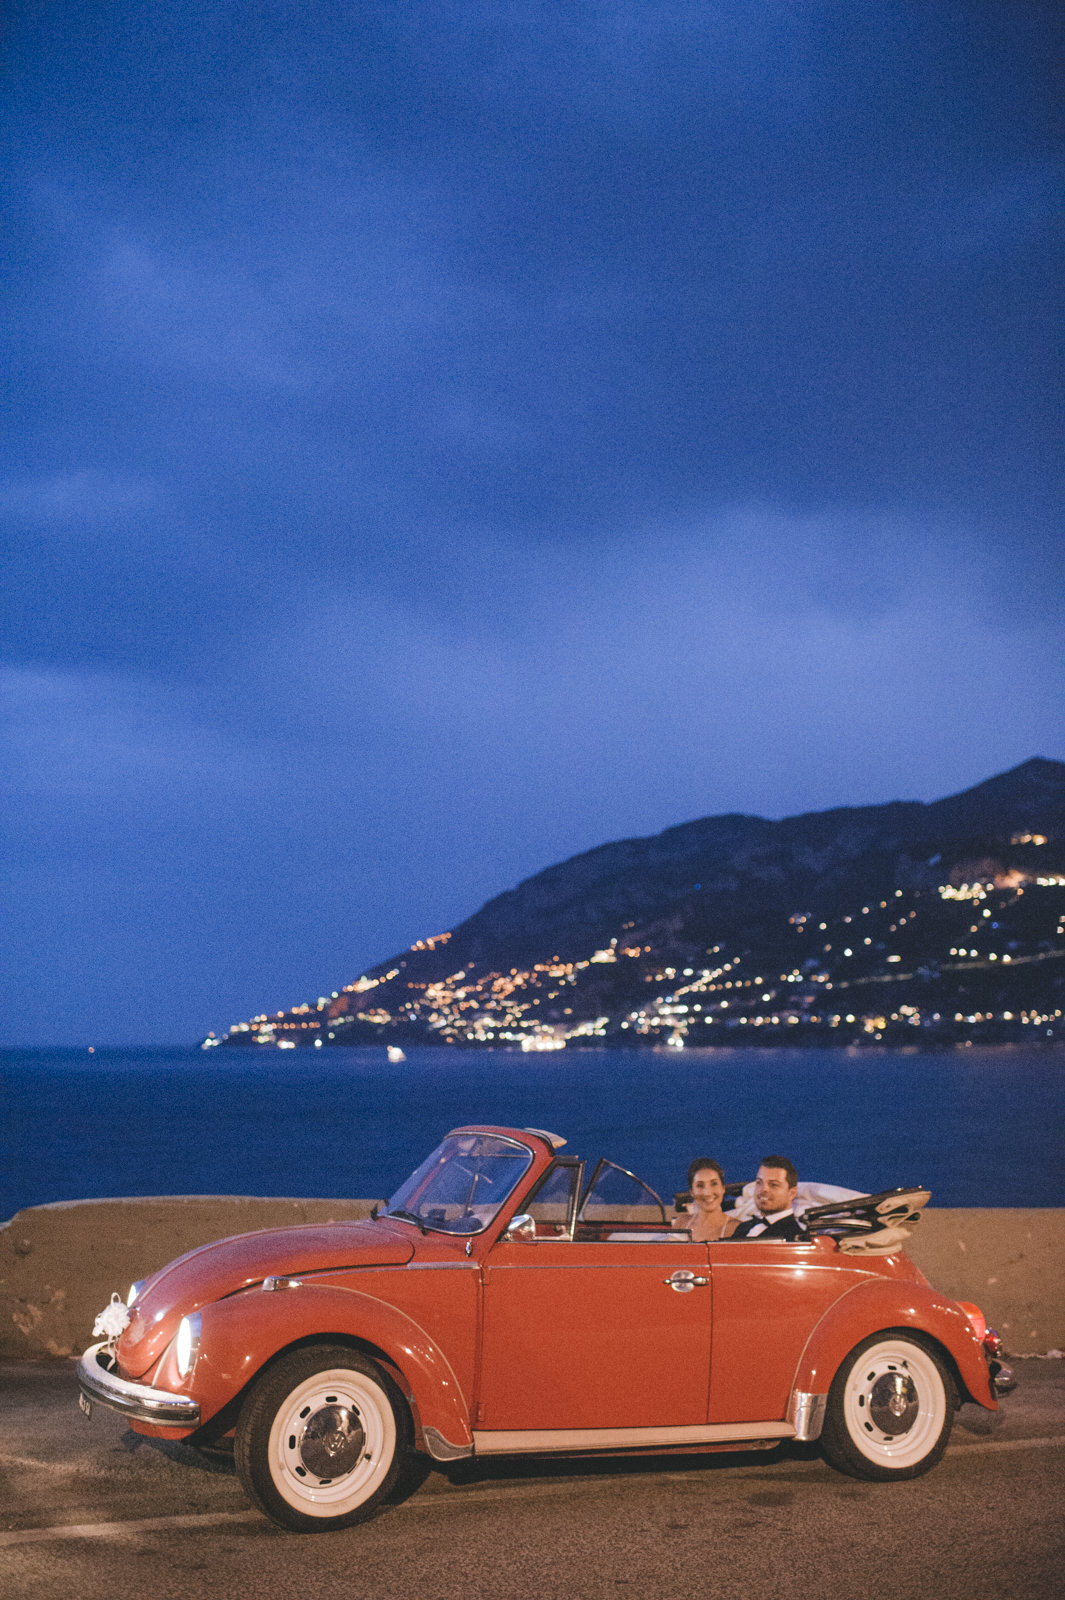 the bride and the groom sitting in their red wedding car with the amalfi coast on the background